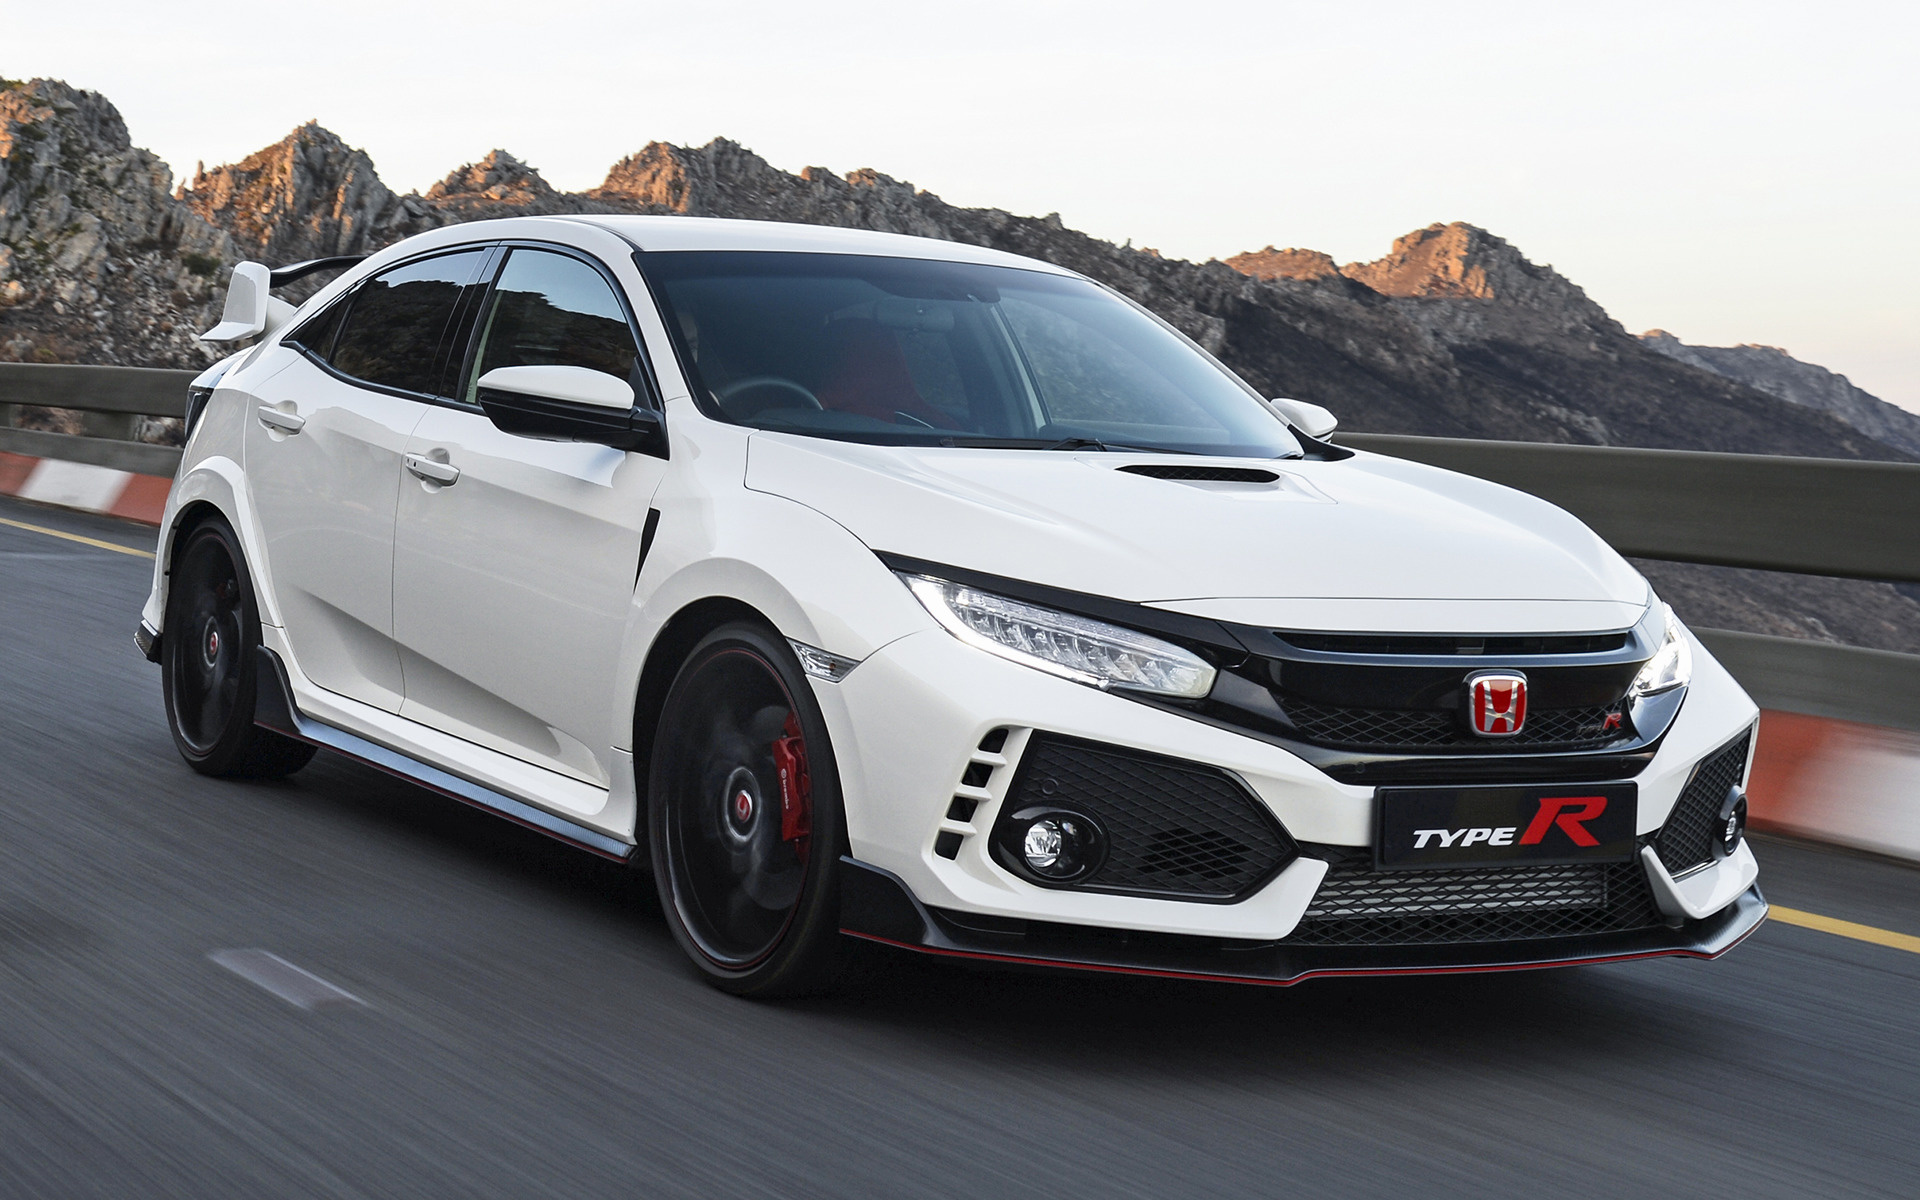 2018 Civic Type R >> 2018 Honda Civic Type R (ZA) - Wallpapers and HD Images | Car Pixel